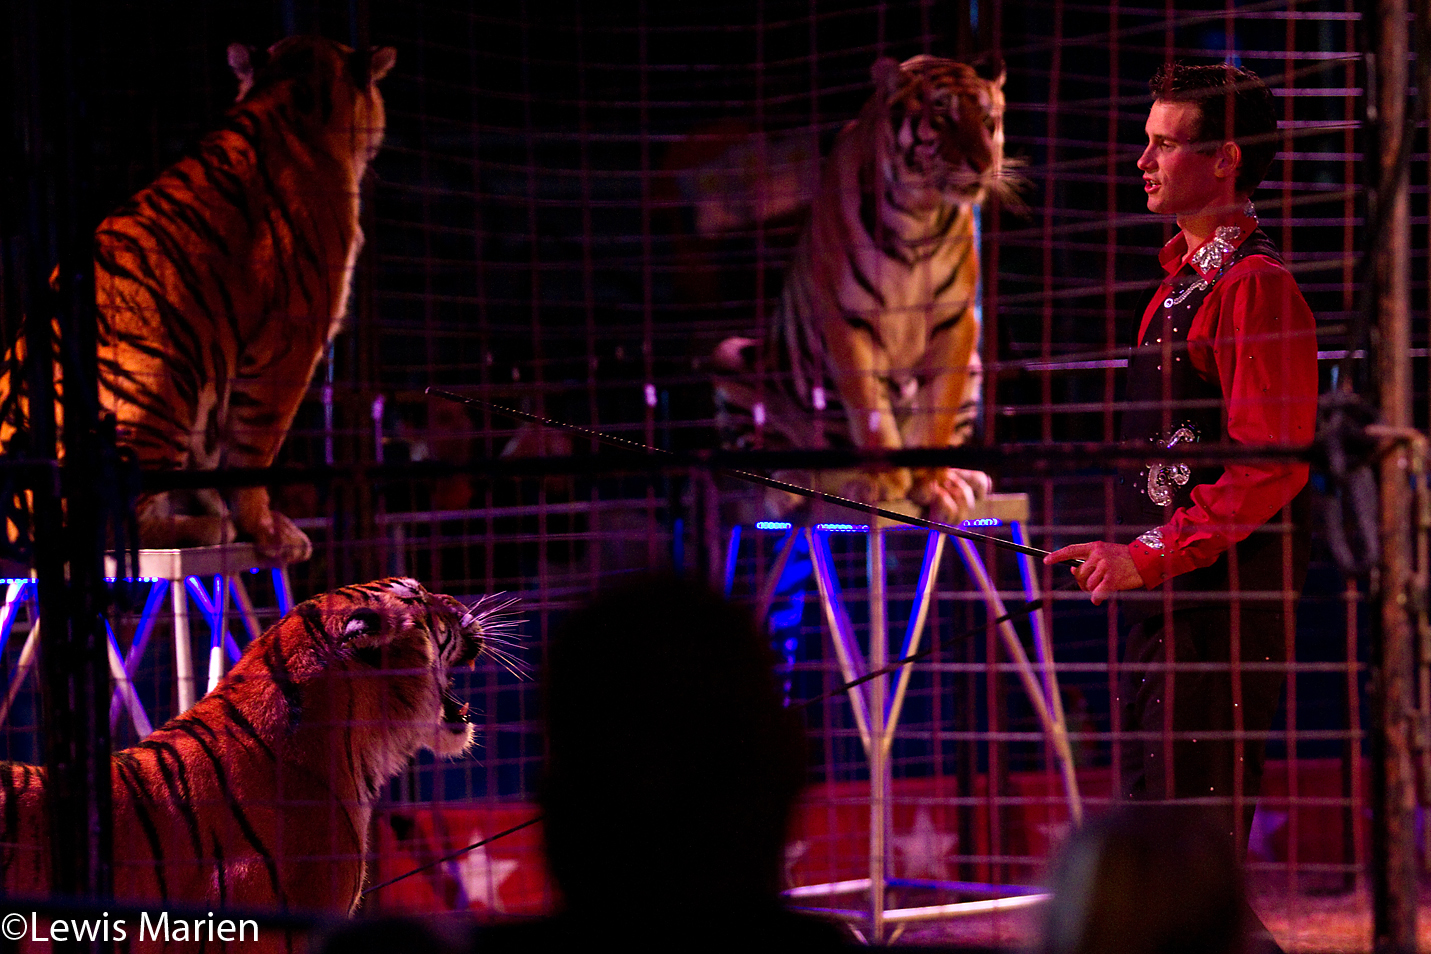 Ryan Holder, of St. Louis, does an act with tigers during the Kelly Miller Circus's performance Oct. 2 at the Calvary Assembly of God's church grounds in Galesburg, Ill.